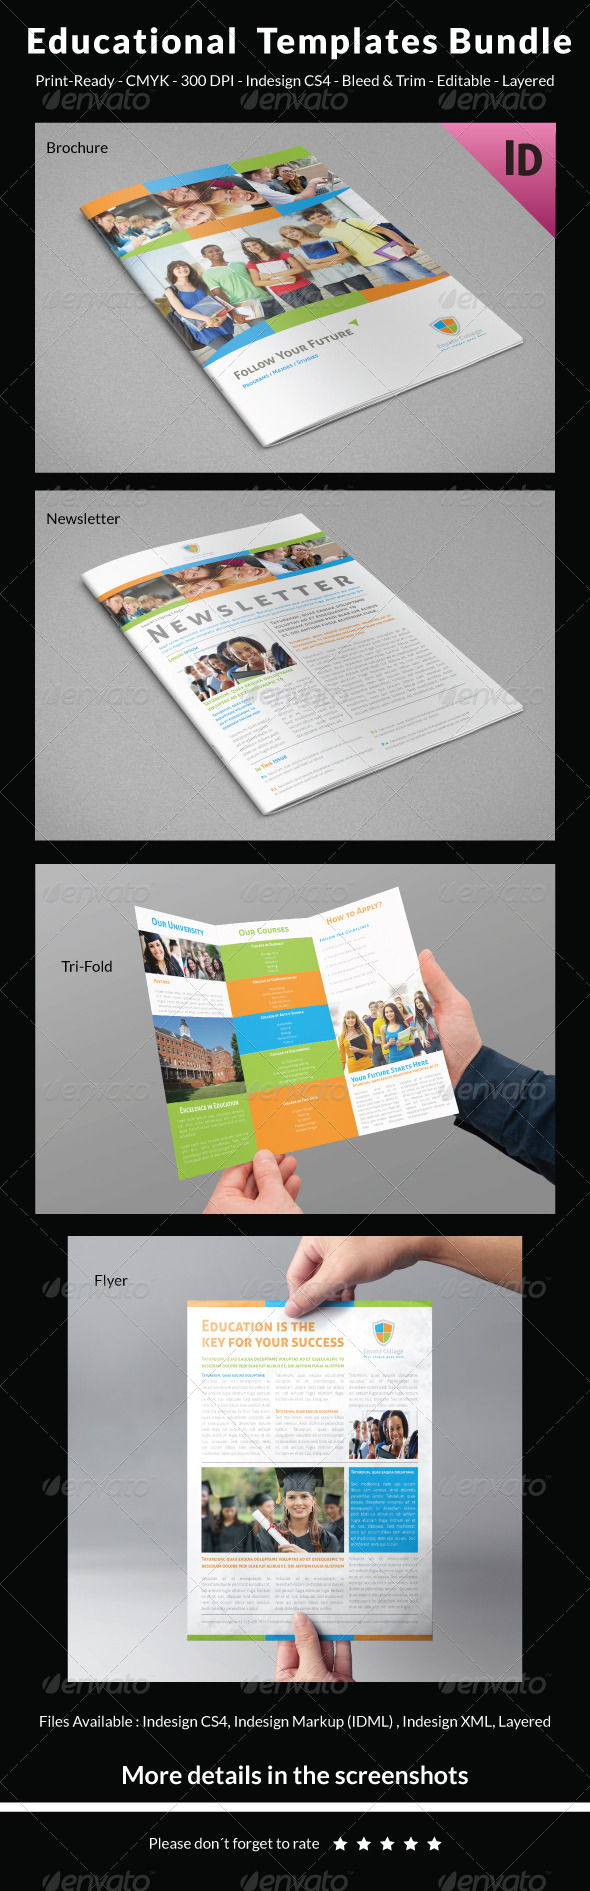 Education Template Graphics, Designs & Templates